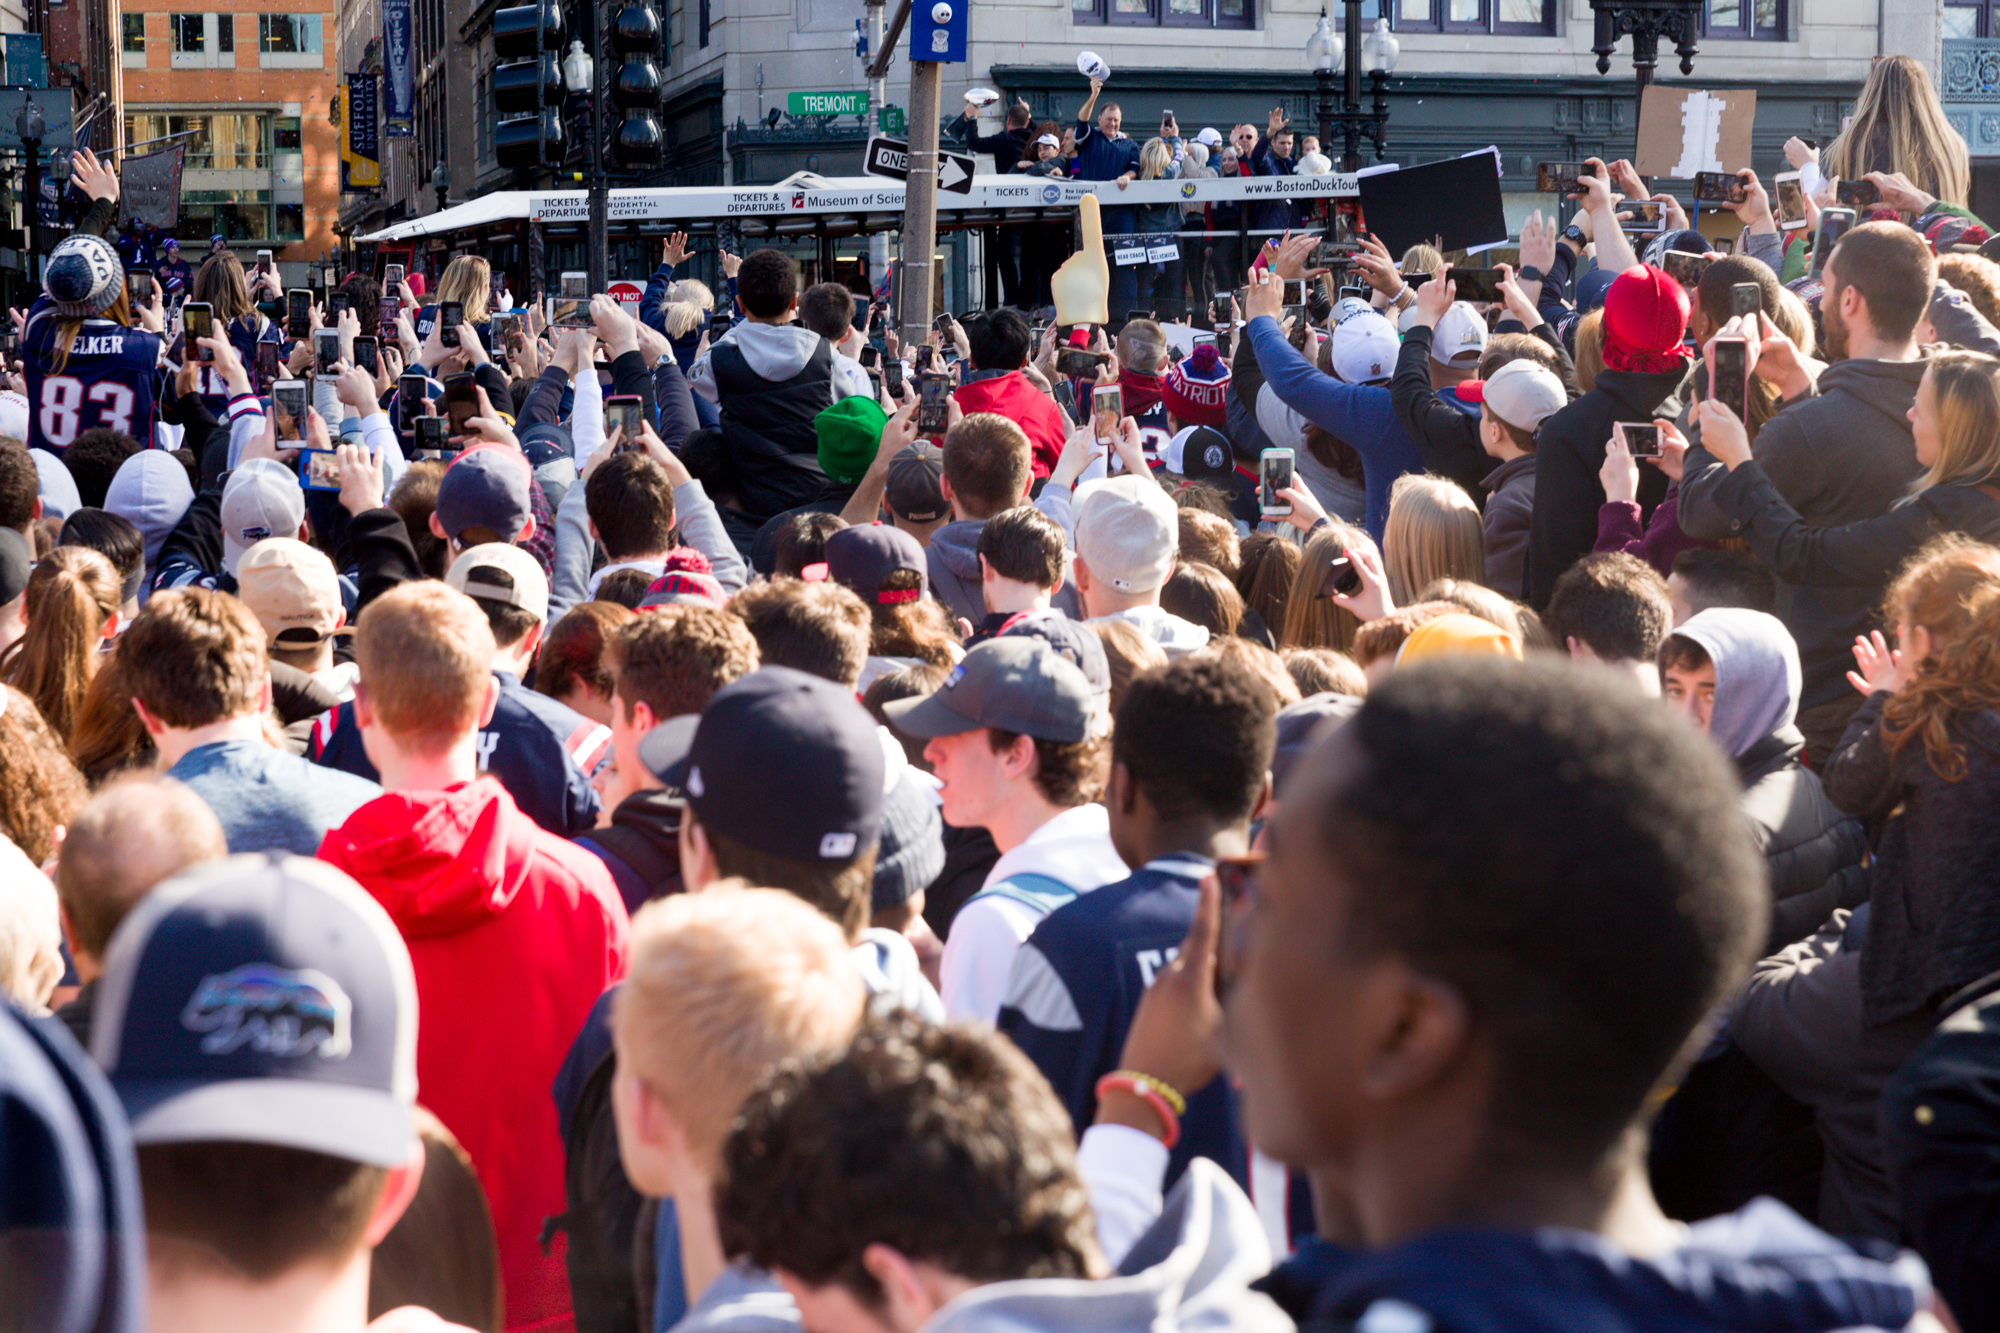 When we got back to Tremont St. from Boylston to see if we could get some more stuff, we were confronted with this huge mass of humanity which pretty much prevented us from getting much else. That's Bill Belichick again, way out there, waving his cap.